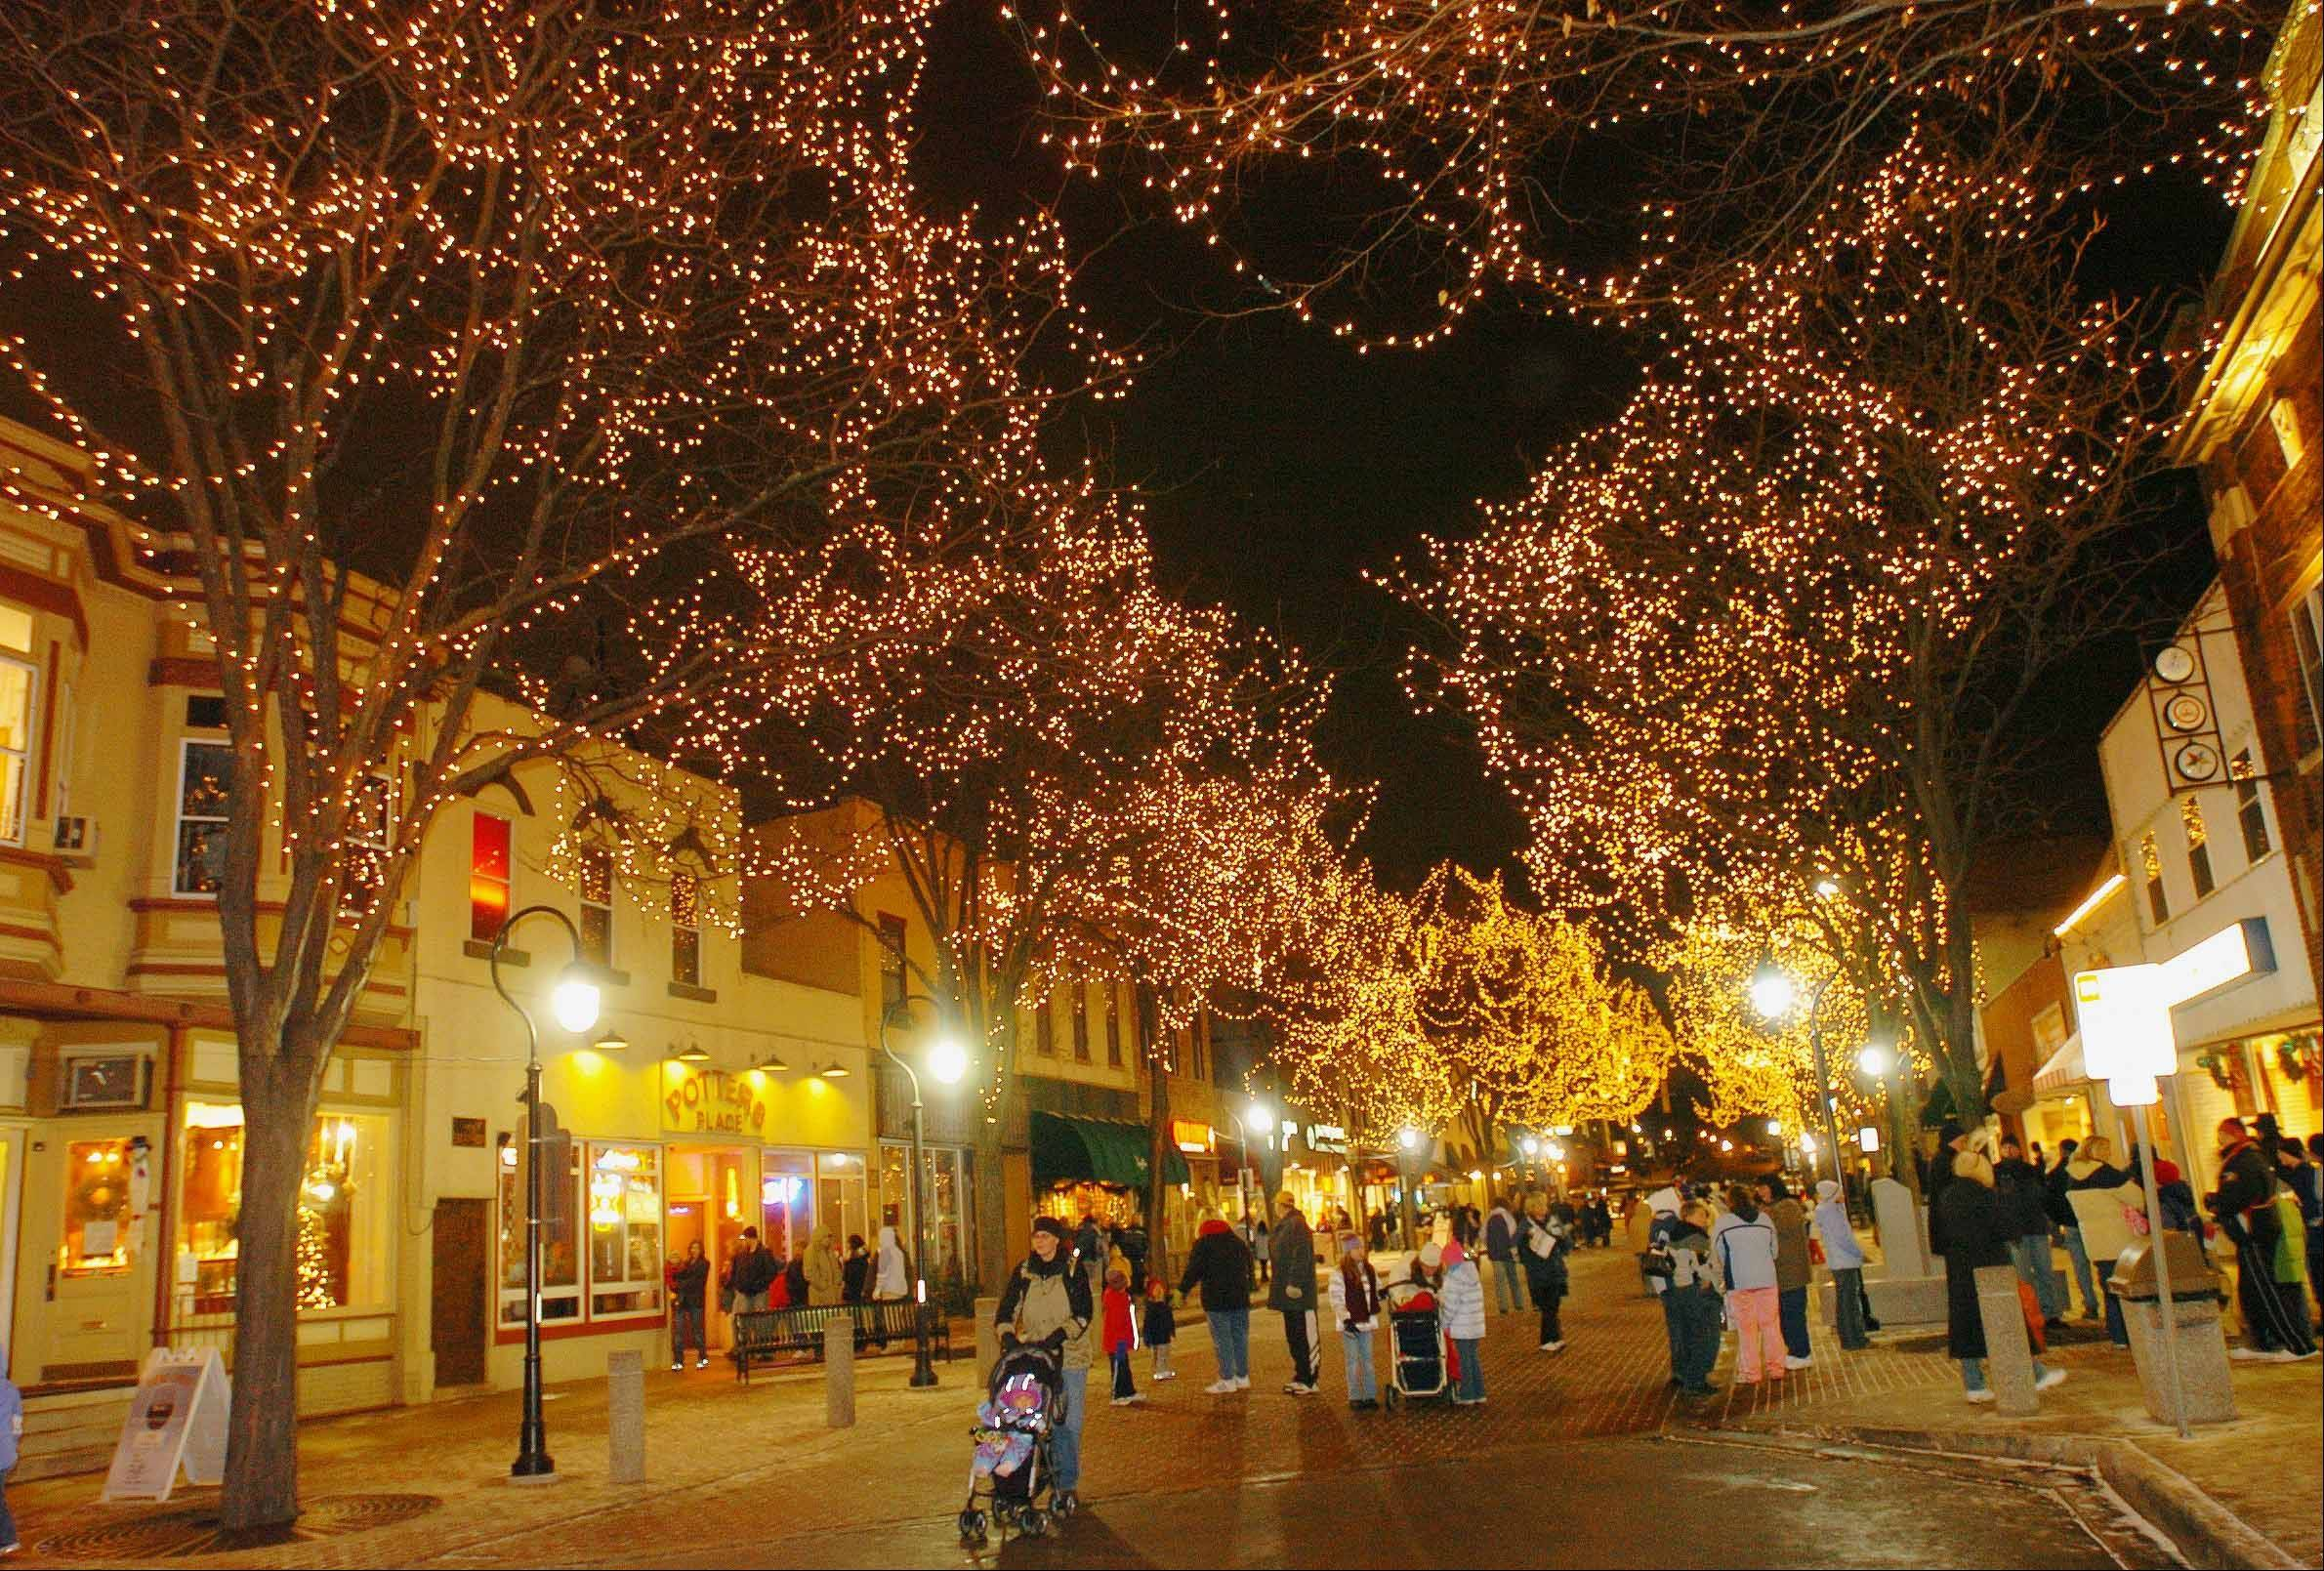 The Holiday Grand Illumination will dazzle with more than 300,000 holiday lights during a Hometown Holidays kickoff event at 6 p.m. Friday, Nov. 8, in downtown Naperville. Usually held around Thanksgiving, the ceremony was moved up about three weeks to precede Sunday�s inaugural Edward Hospital Naperville Marathon.